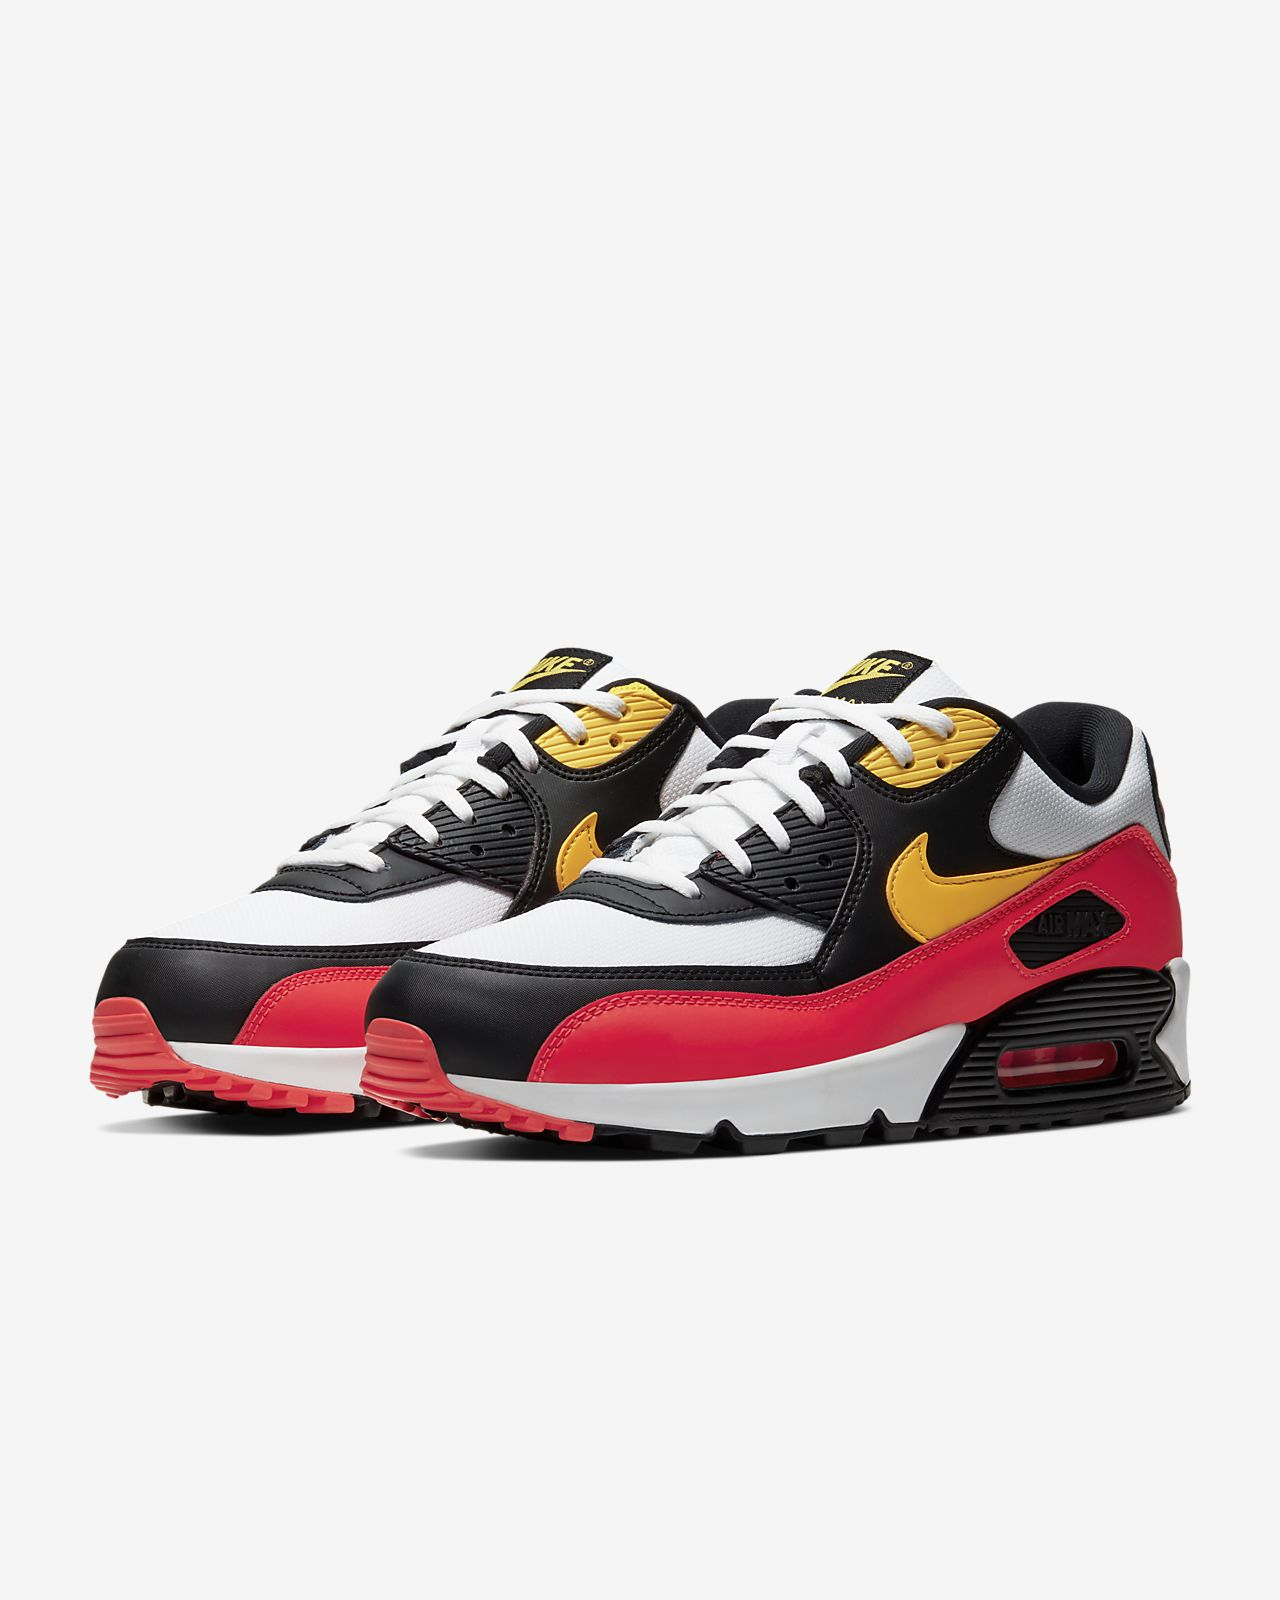 Nike Air Max 90 Essential AJ1285 107 Size 13 Authentic New | eBay